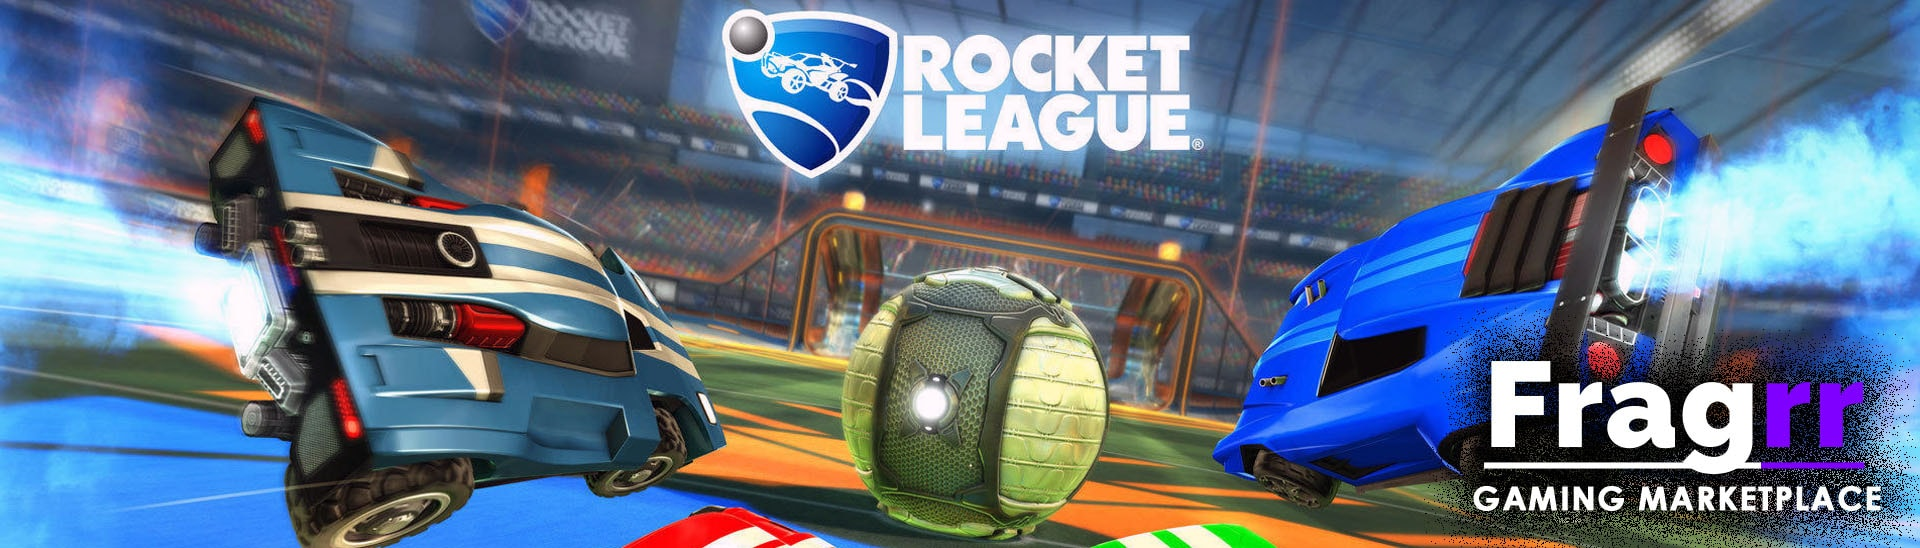 Rocket League boosting services